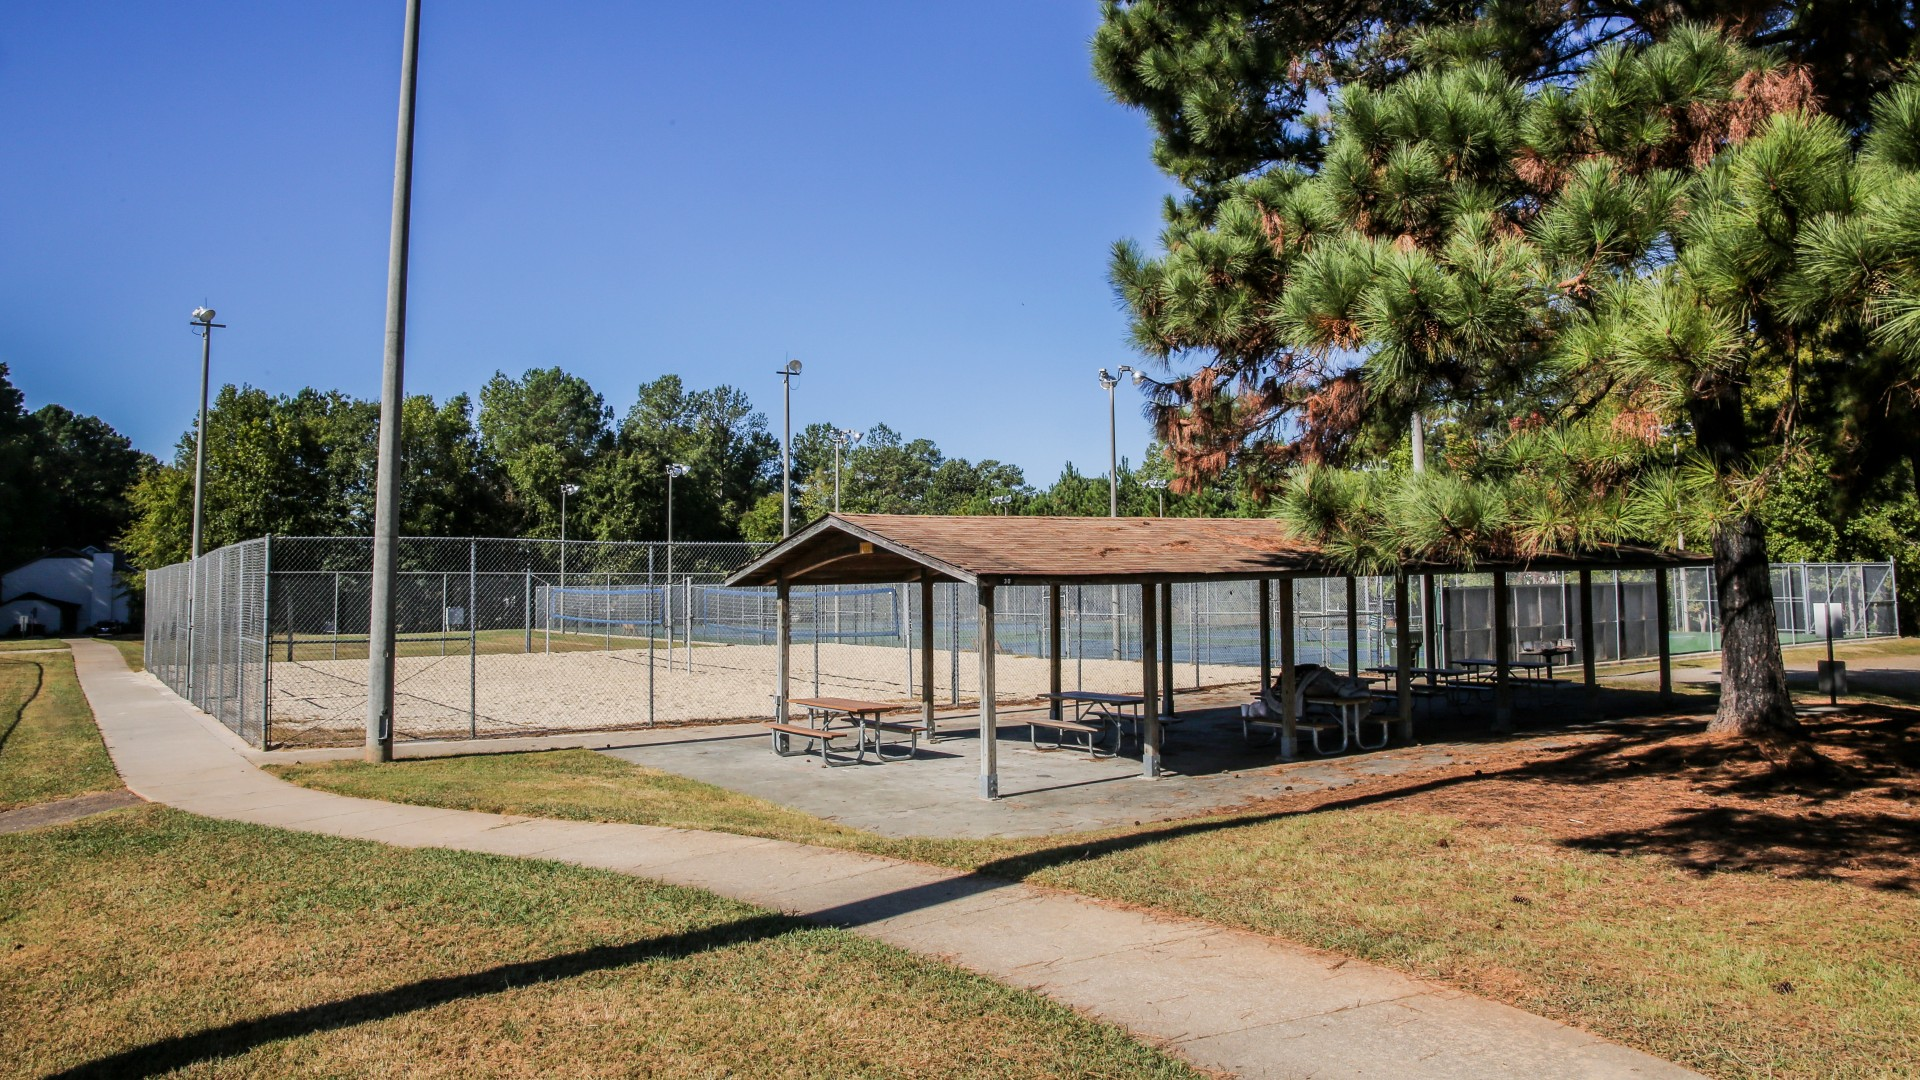 Picnic shelter located next to the sand volleyball courts at Green Road Park